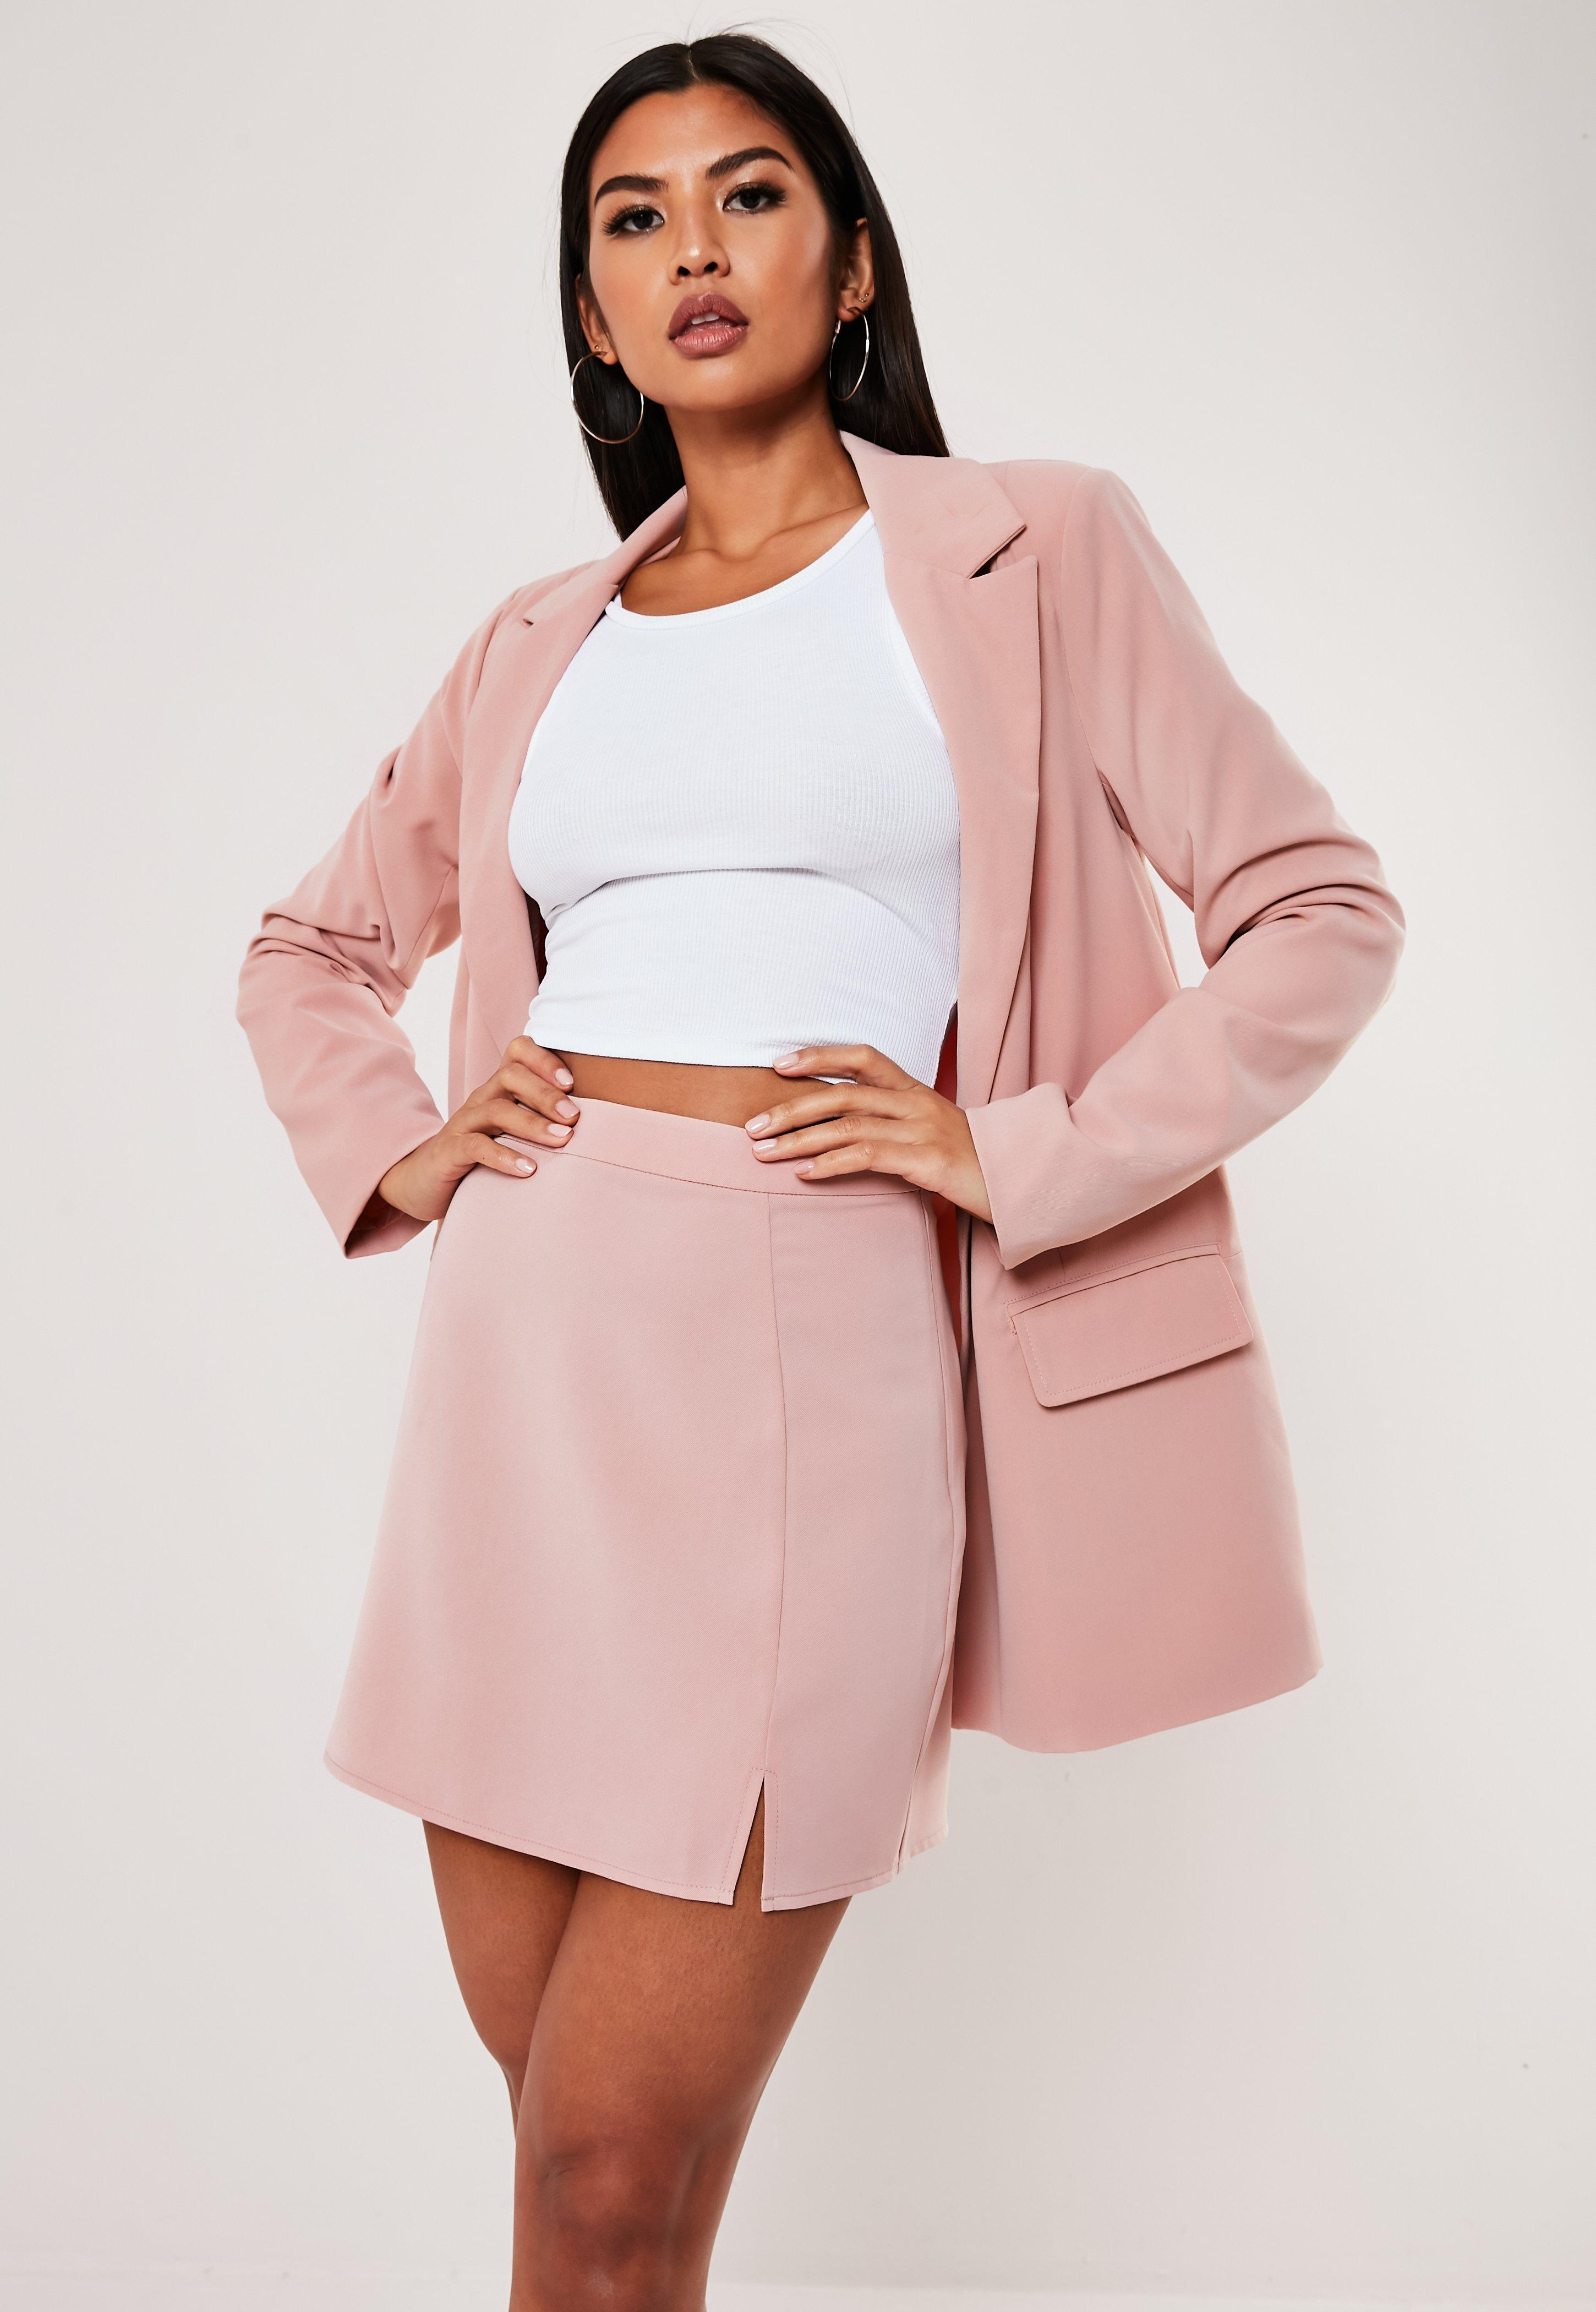 51ec3b67a4f5 Women's Tailoring | Suits for Women & Tailored Sets - Missguided